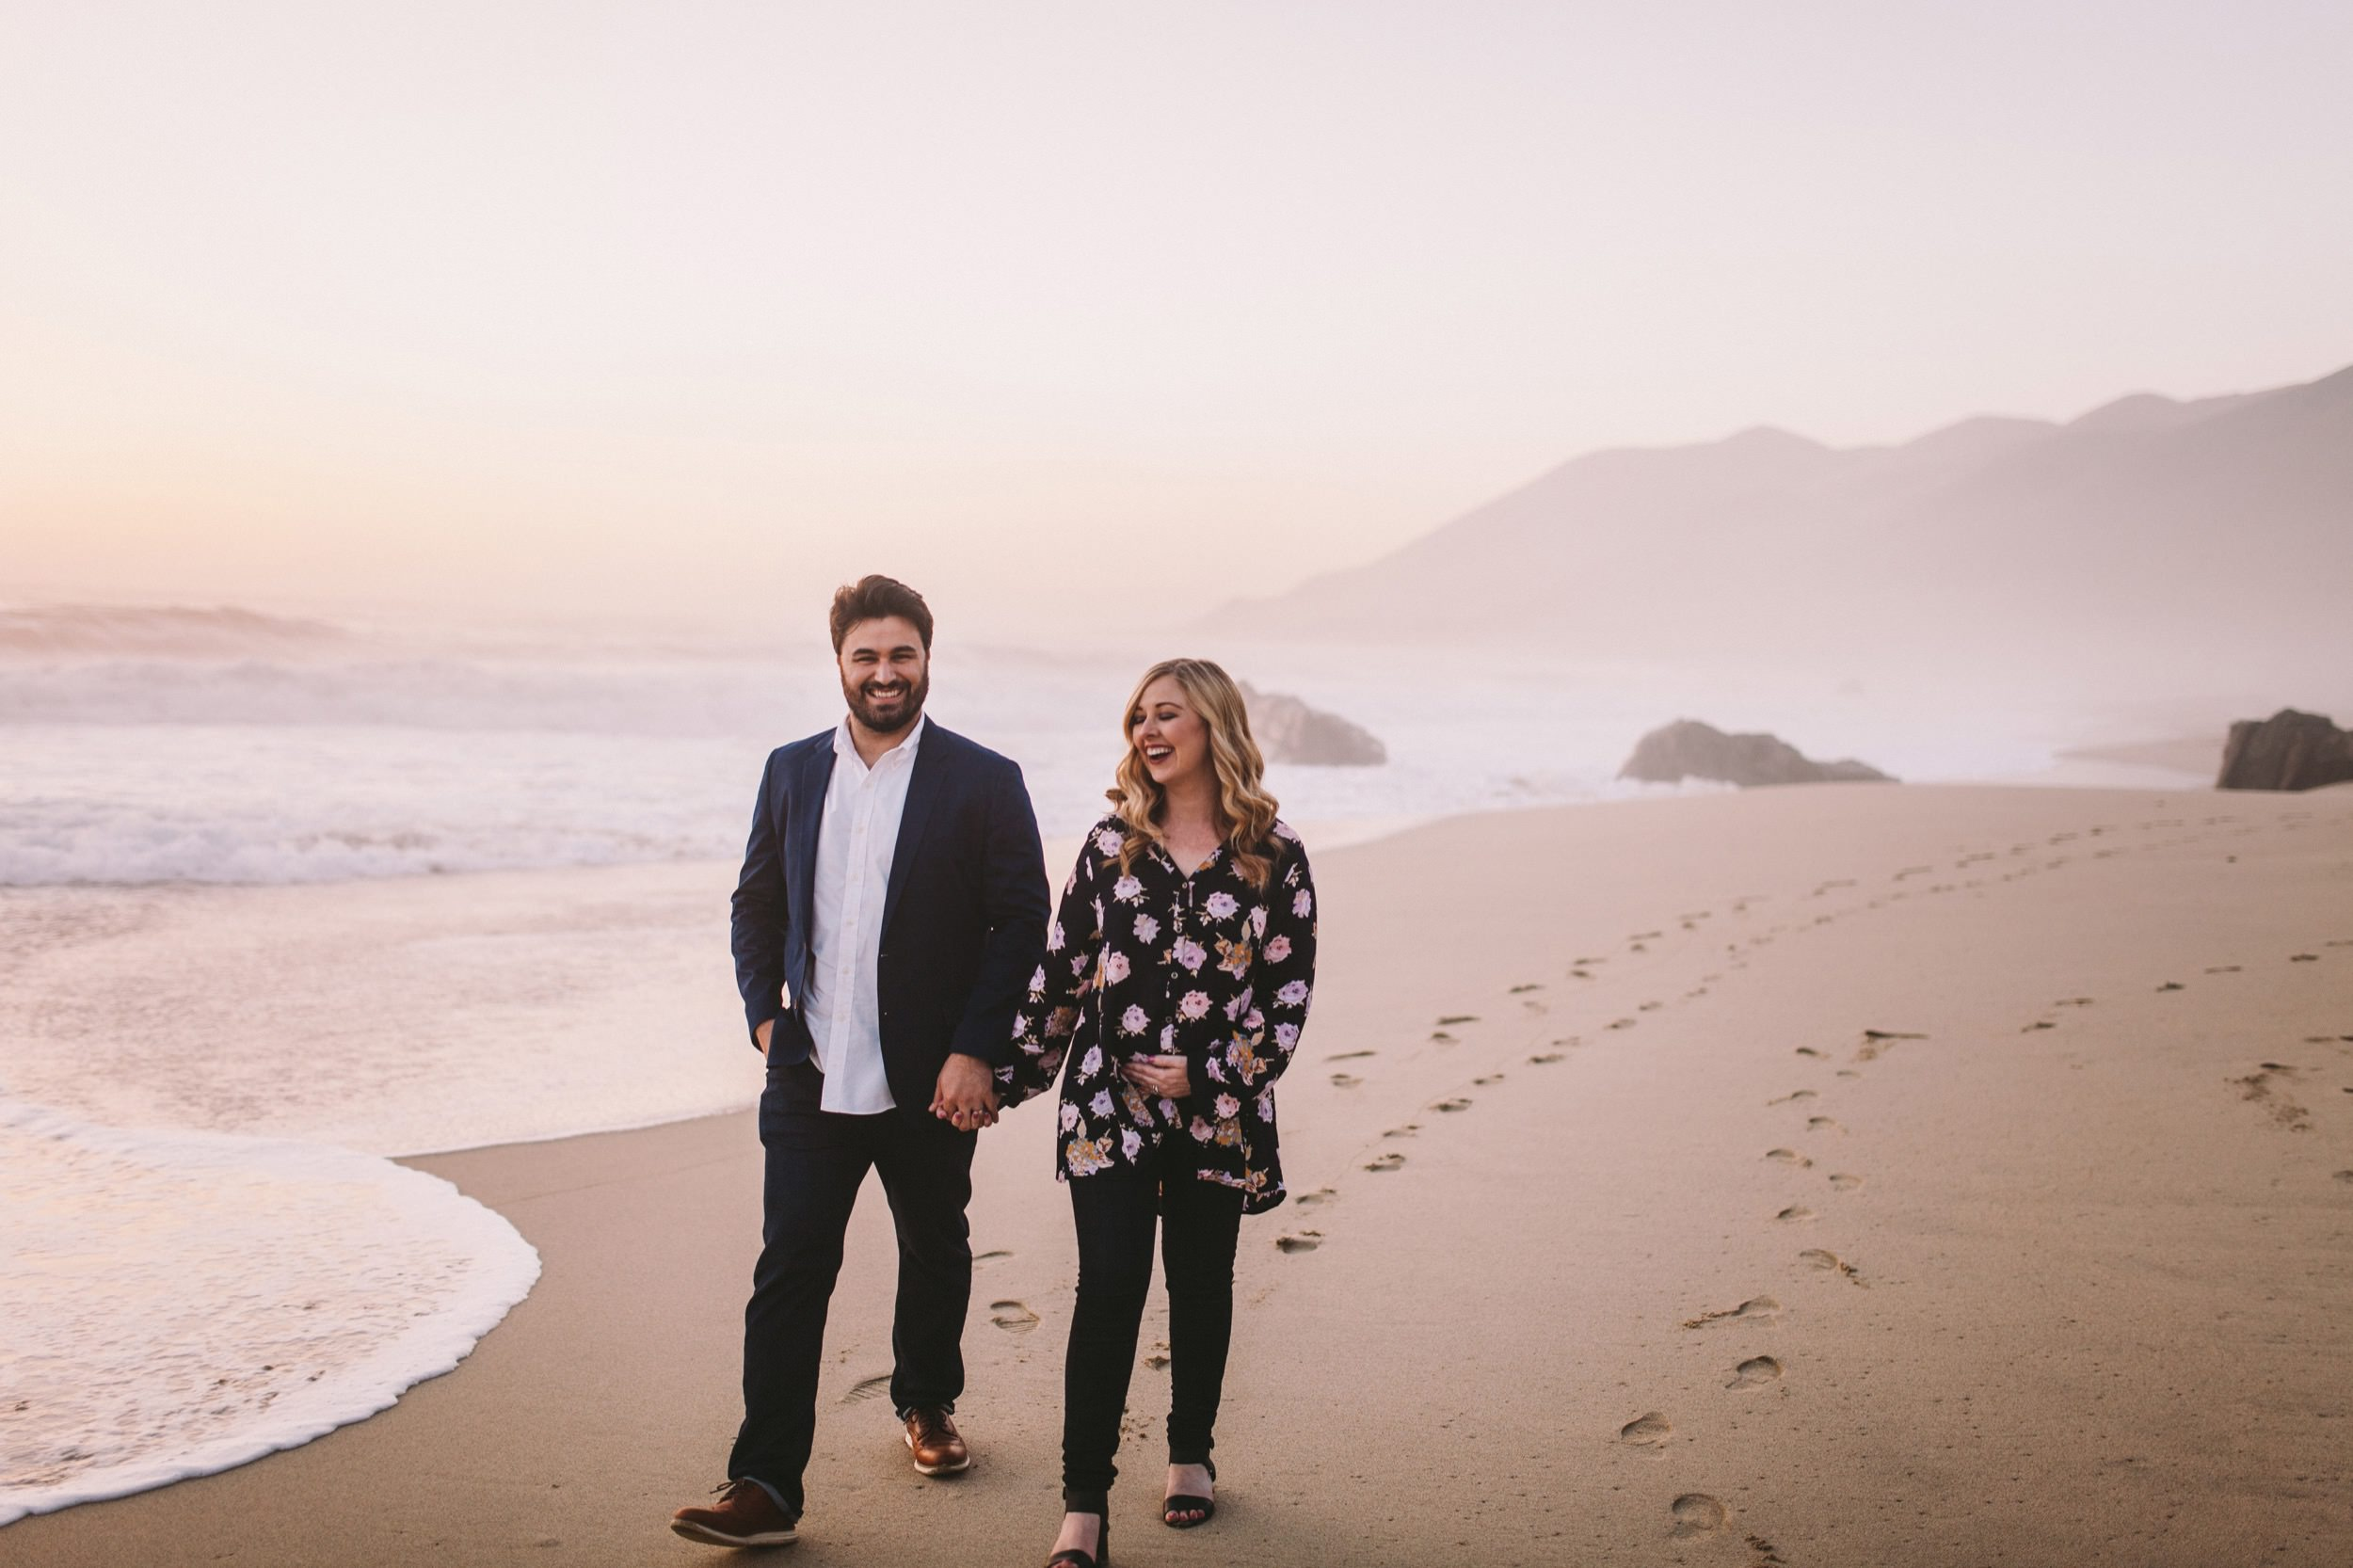 Garrapata State Park Couple Walking on the Beach Photography Session